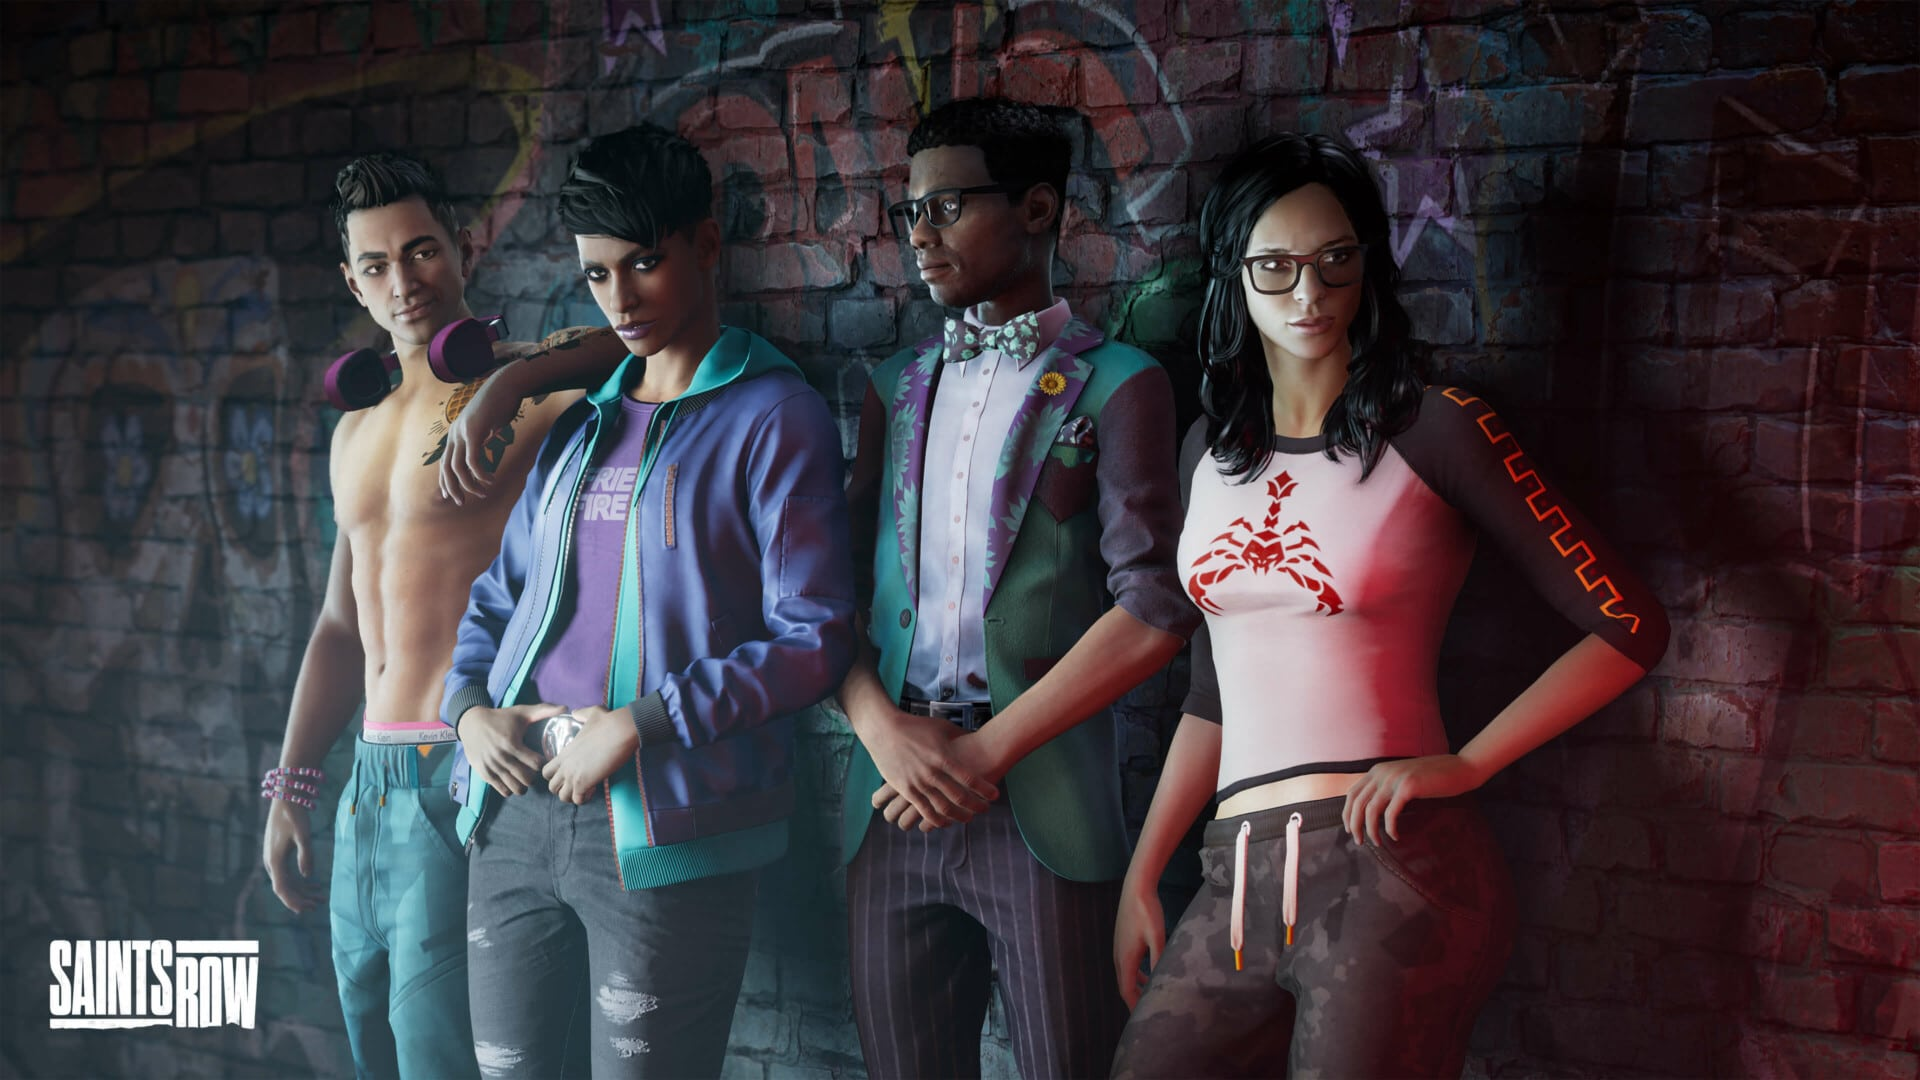 reboot Saints Row franchise is about satire, so Generation Gen Z energy is fine from Volition and Deep Silver